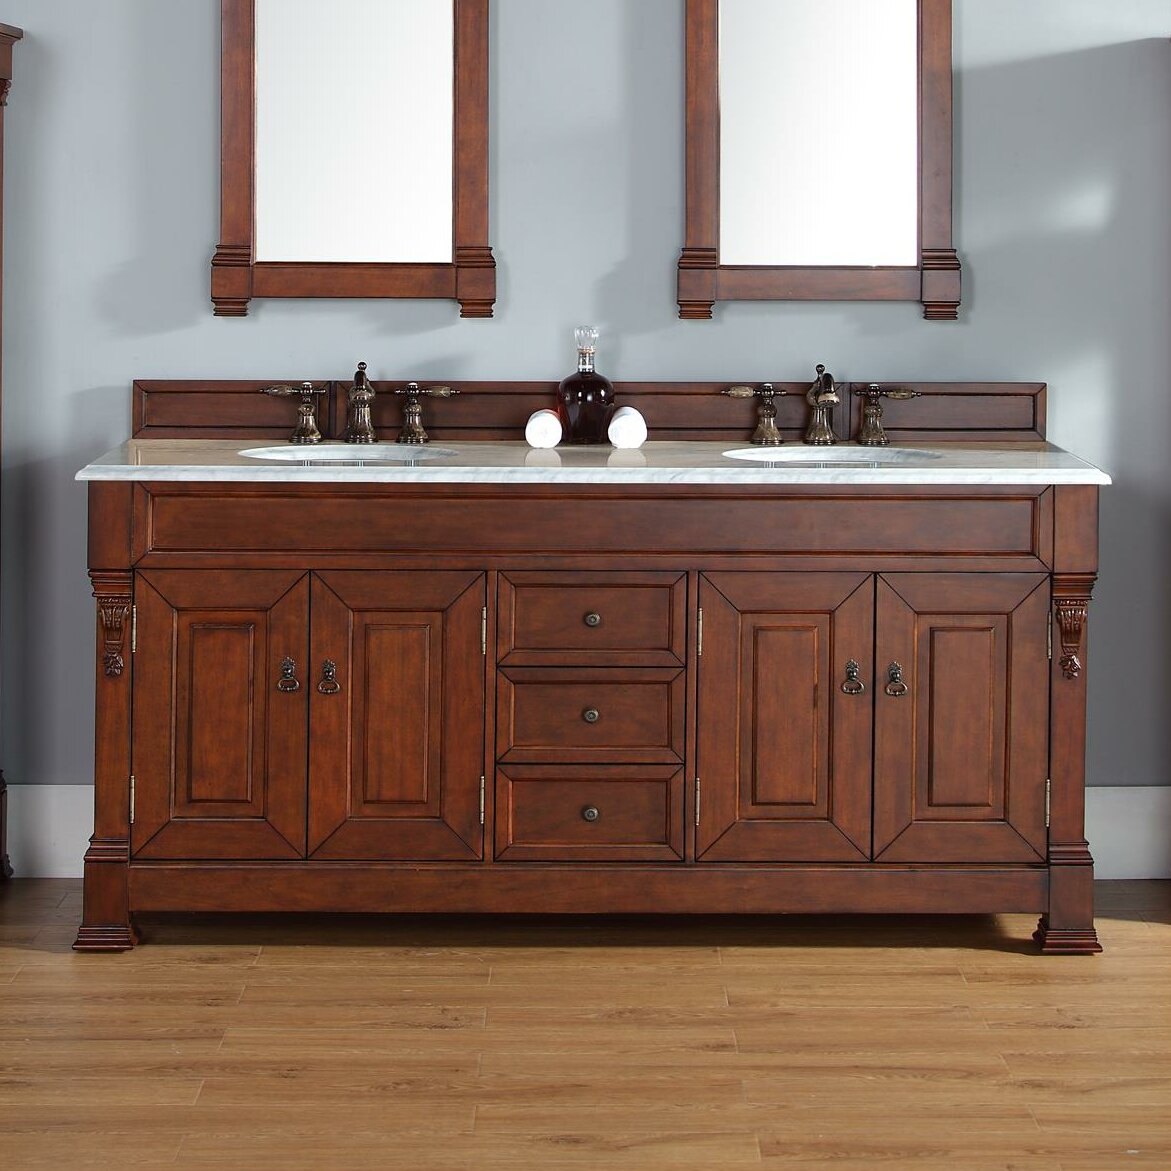 """Darby Home Co Bedrock 72"""" Double Warm Cherry Bathroom Vanity Set with Drawers & Reviews   Wayfair"""